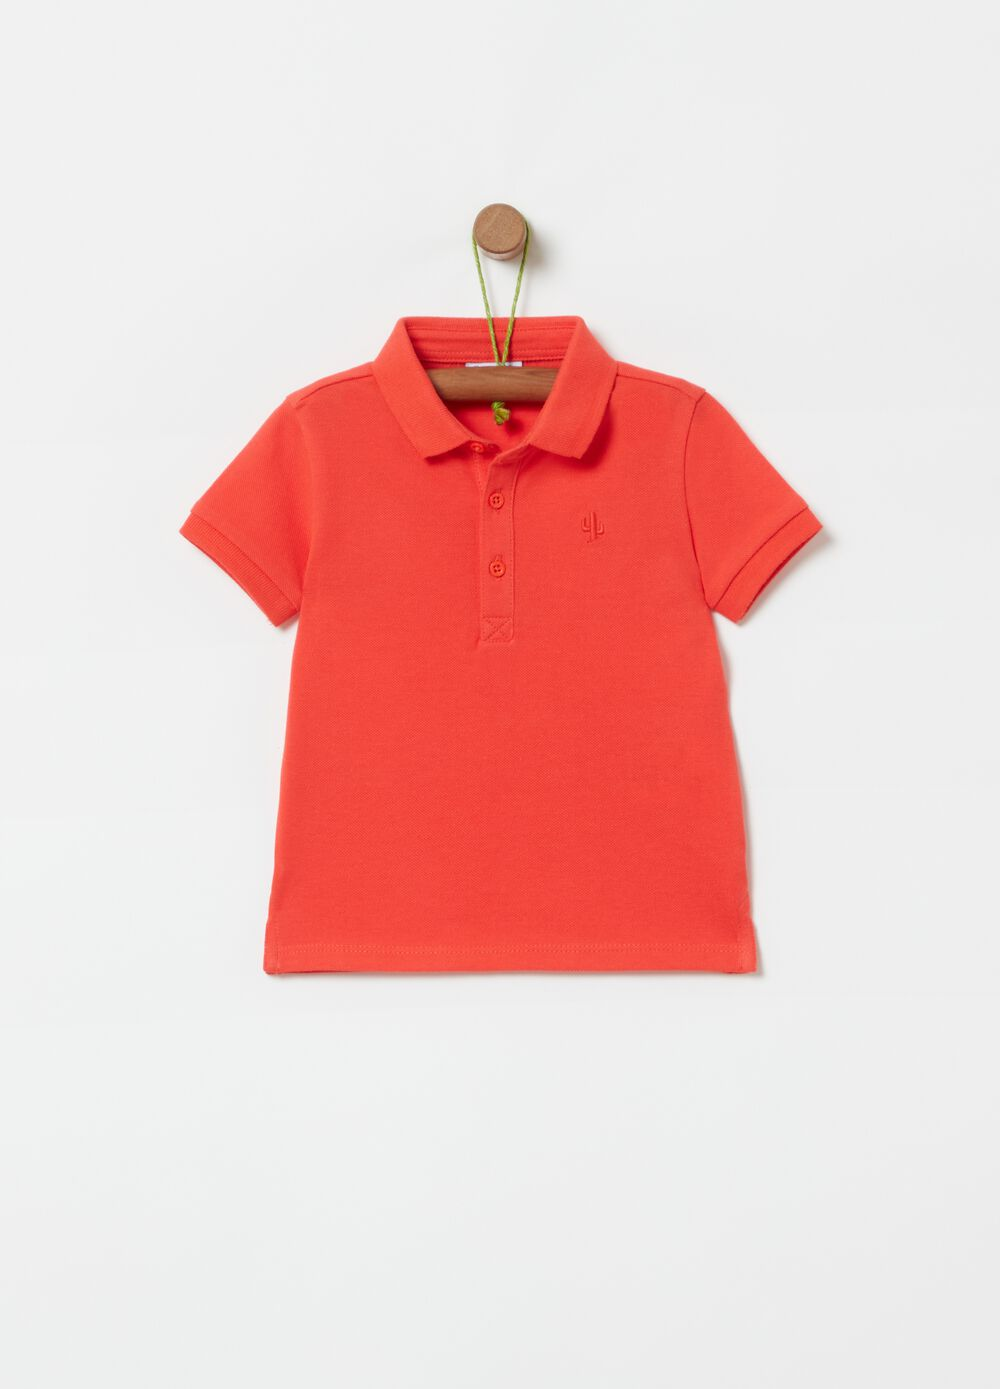 100% organic cotton polo shirt with cactus embroidery